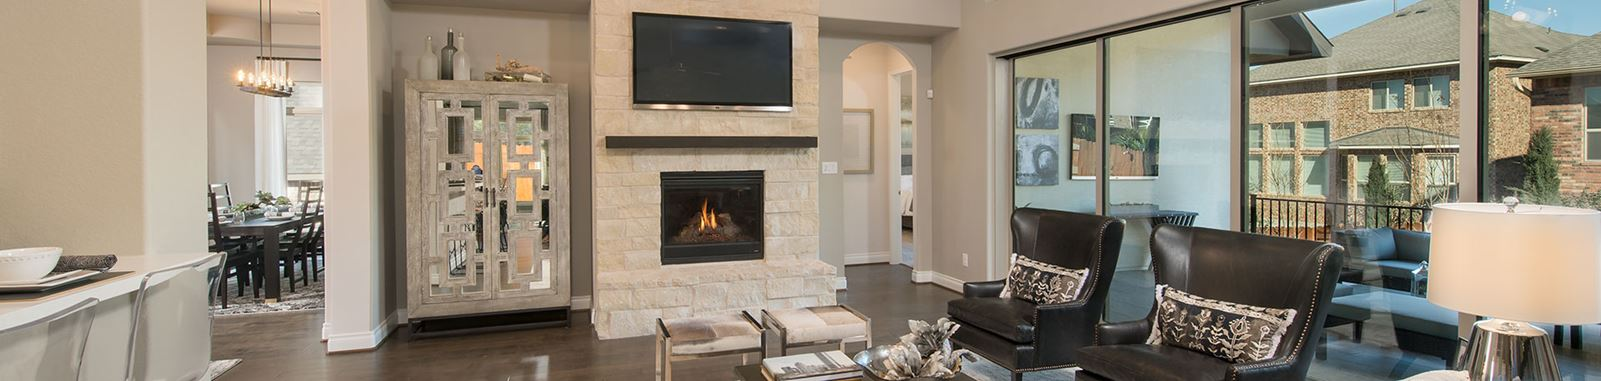 Perry Homes Model Home 3435S in Sweetwater Austin